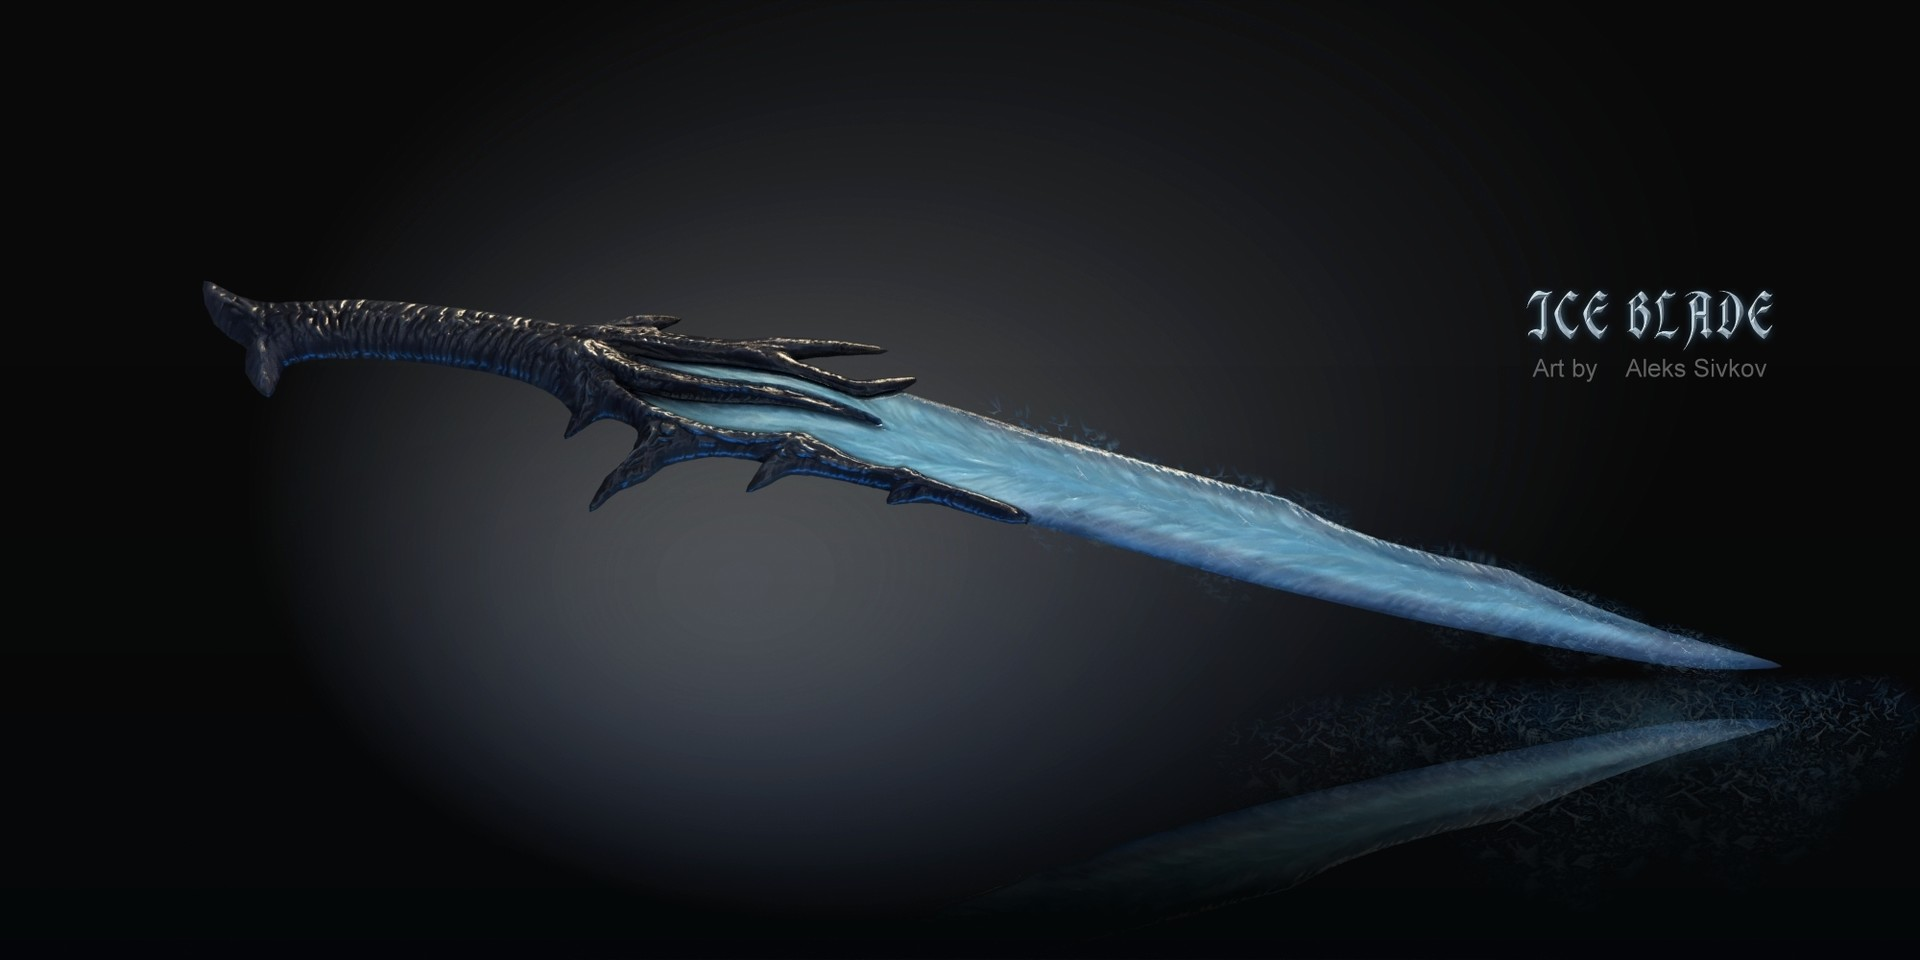 About >> ArtStation - ICE BLADE, Aleksandr Sivkov